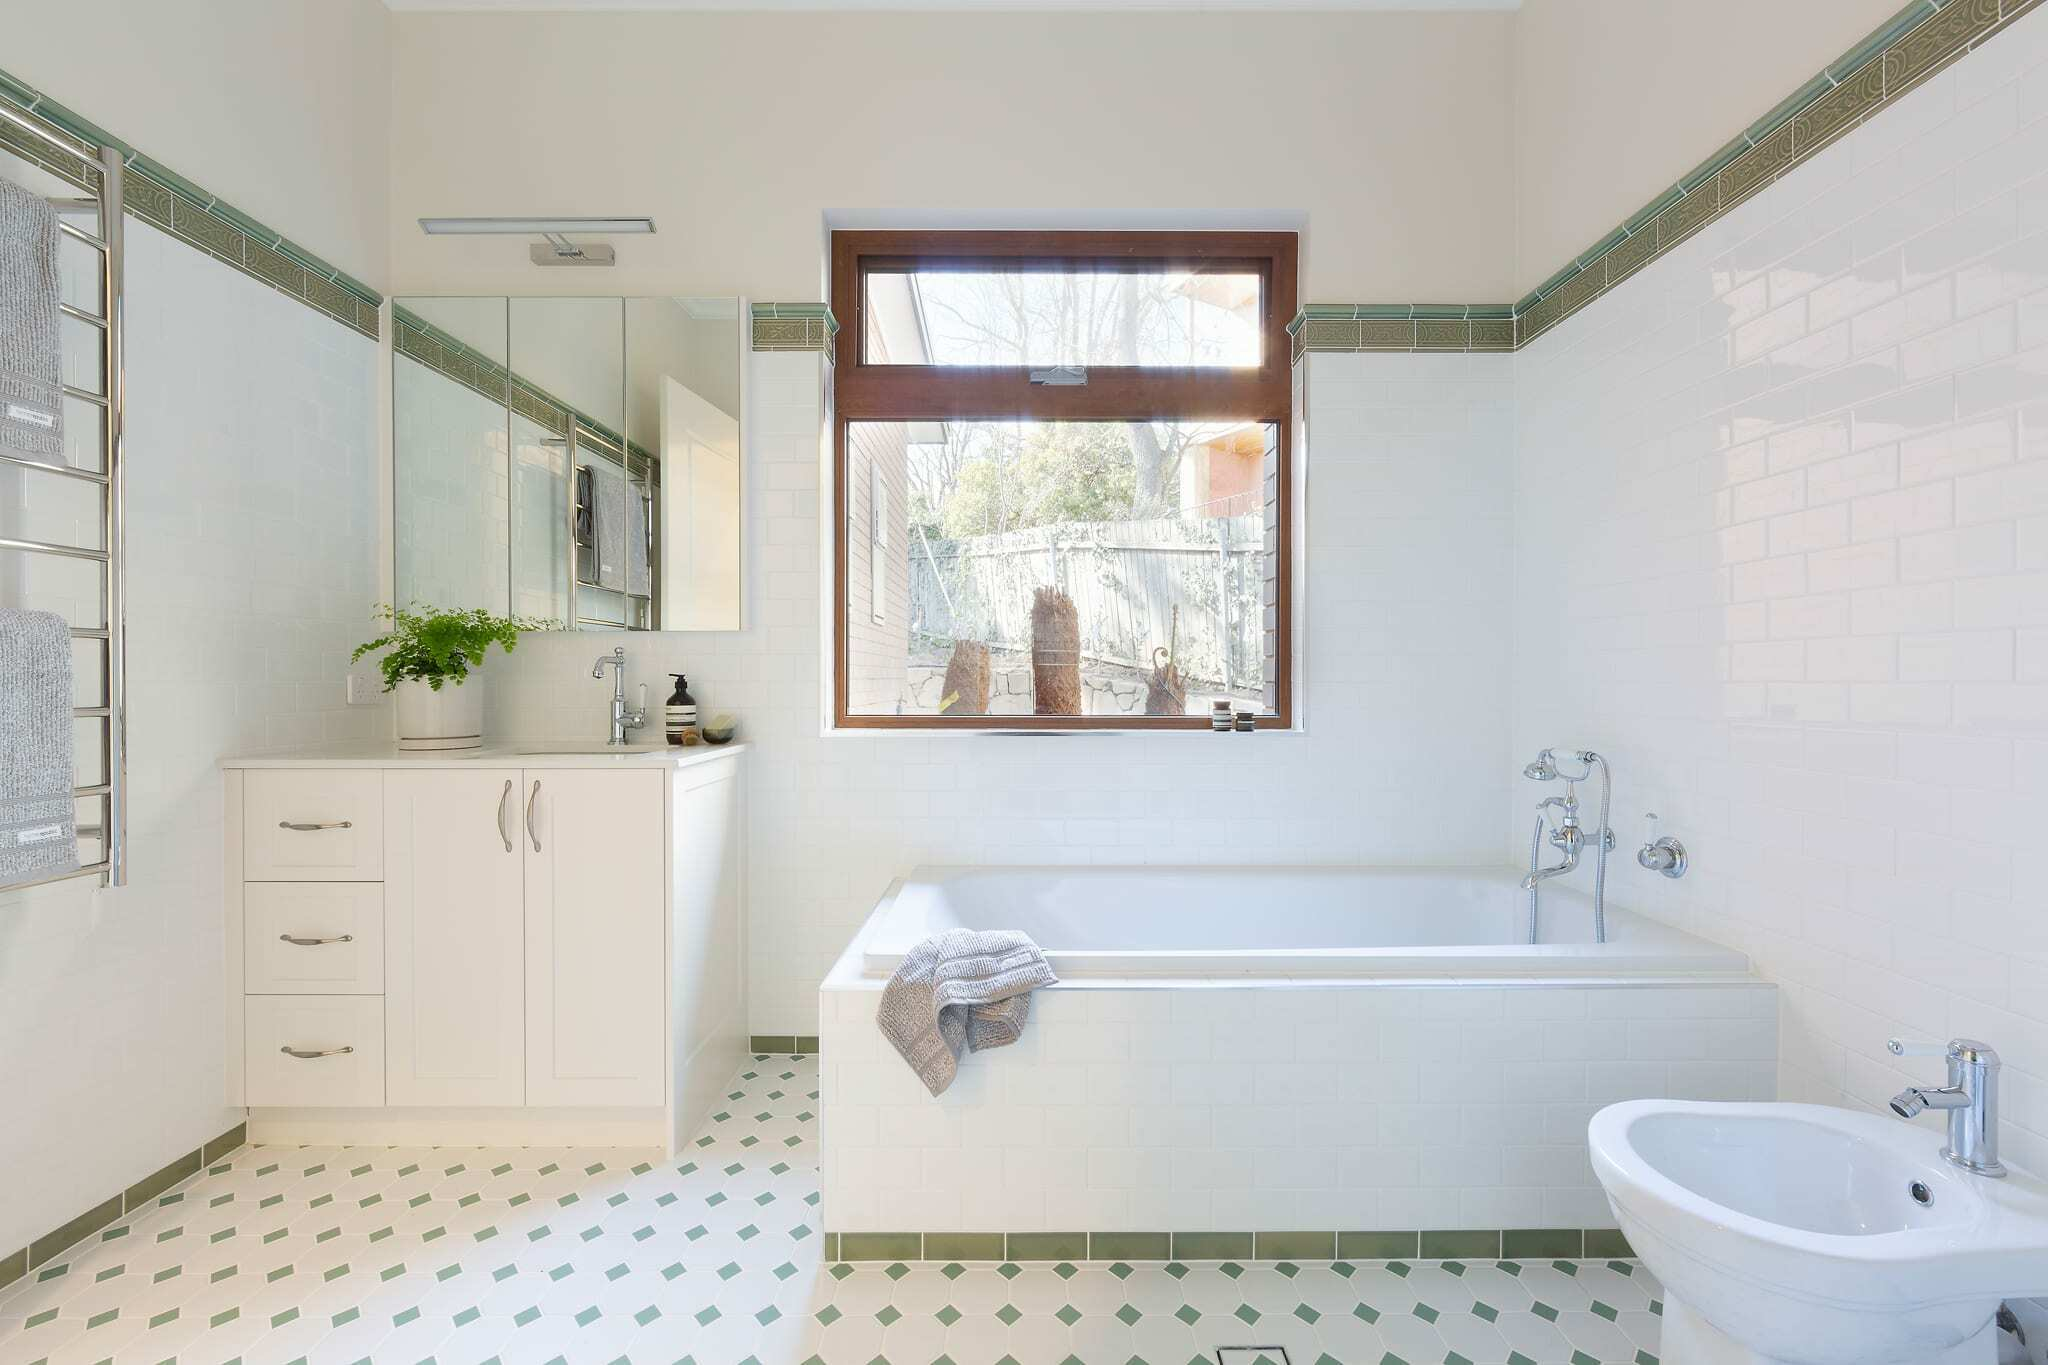 Homes by Howe Canberra builder – Governor Generals' renovation extension – Main bathroom